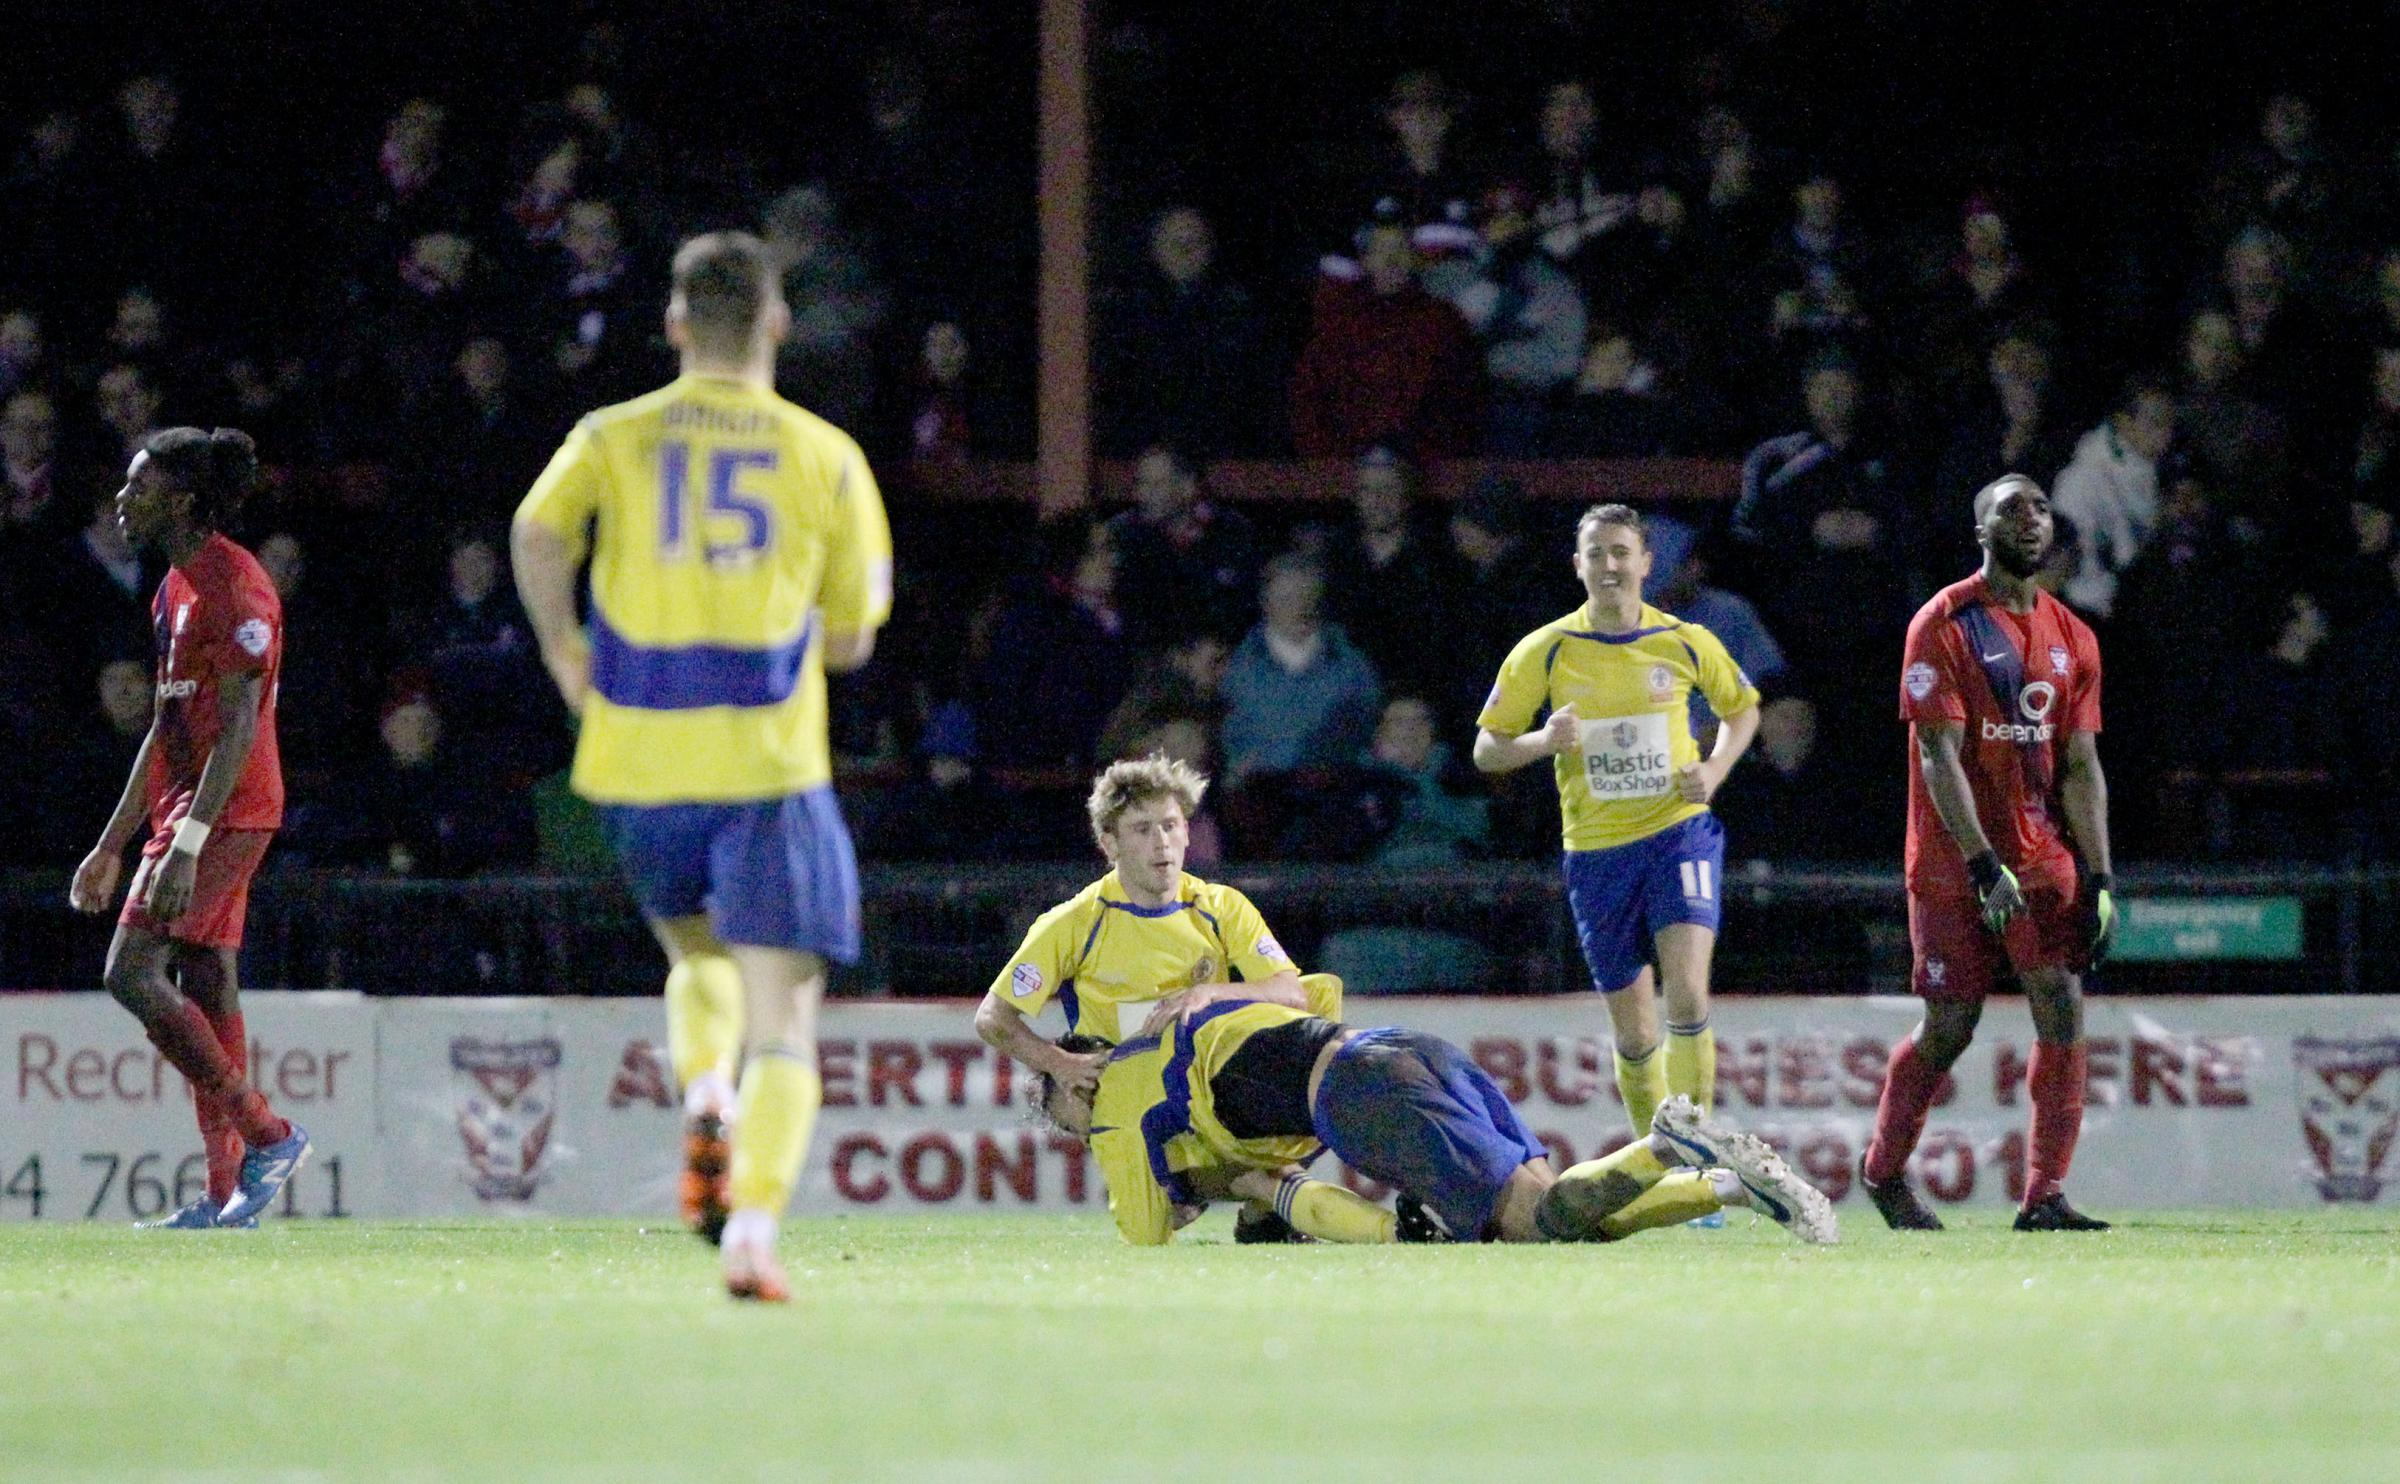 ANOTHER FINE MESS AGAINST STANLEY: York City defenders Stefan O'Connor (left) and Femi Ilesanmi cut forlorn figures as Shay McCartan celebrates the final goal in a 5-1 win for Accrington Stanley. Picture: Gordon Clayton